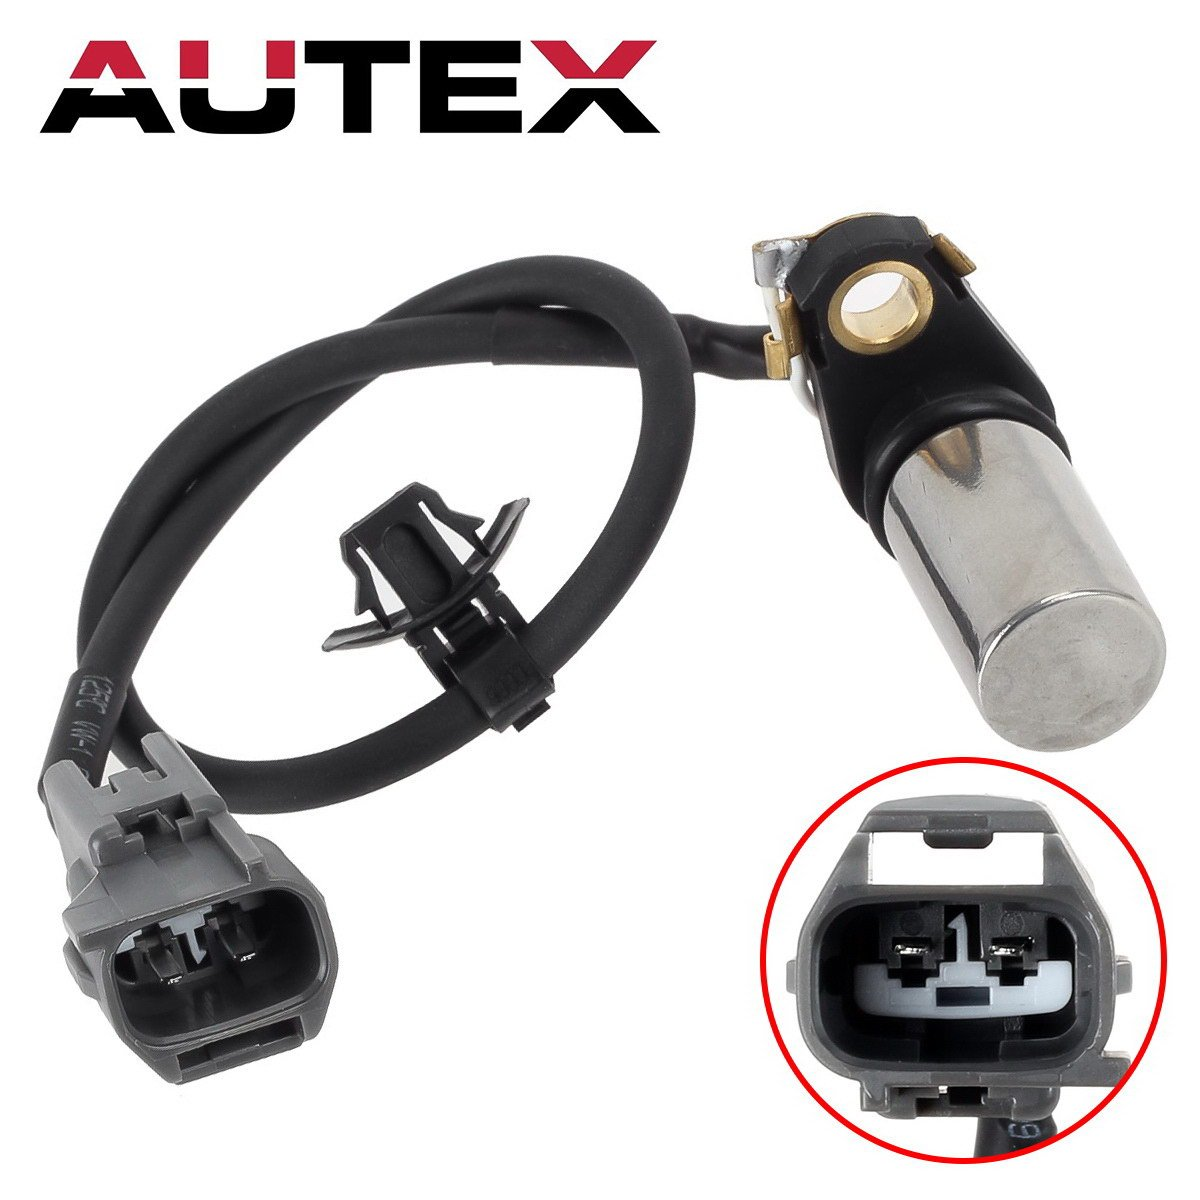 AUTEX Crankshaft Position Sensor PC406 compatible w/ 02-11 Toyota Camry 09-10 Corolla 01-07 Highlander 09-13 Matrix 01-08 RAV4 02-08 Solara 10-12 Lexus HS250h 09-10 Pontiac Vibe 05-10 Scion tC 2014 xB by AUTEX